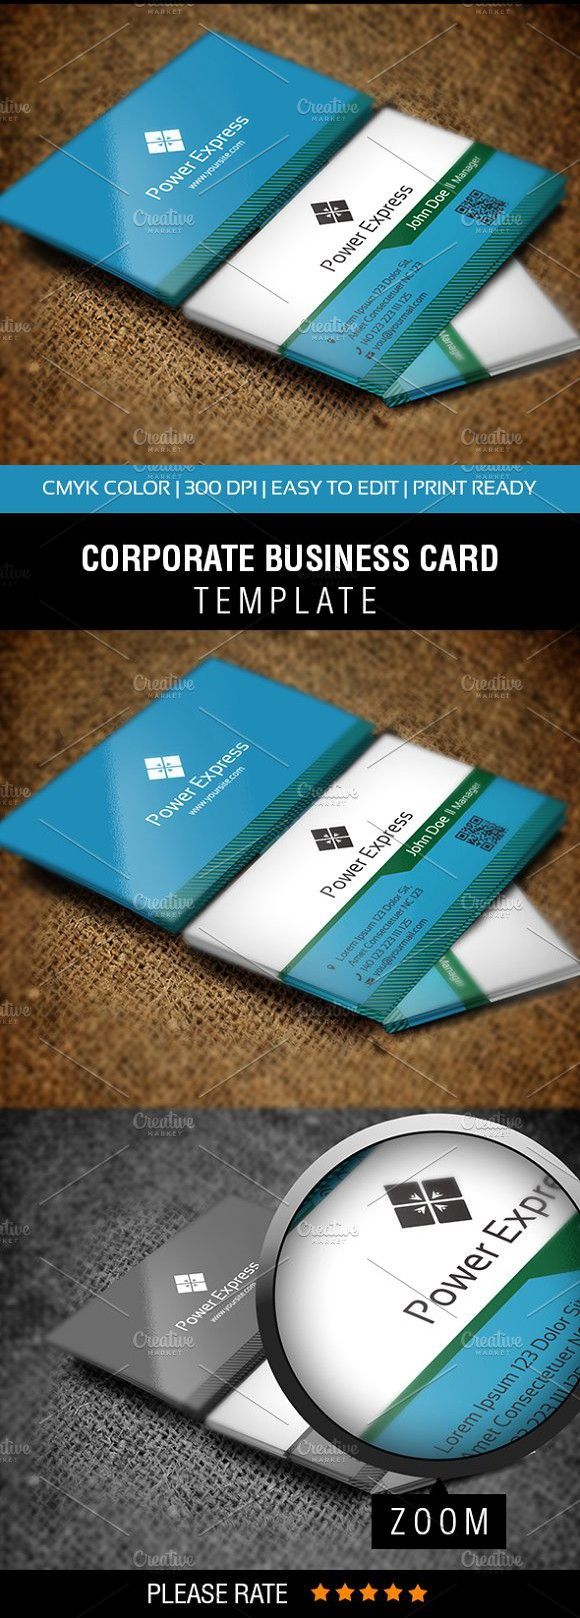 Power Express Business Card Business Card Template Design Business Cards Creative Templates Printable Business Cards